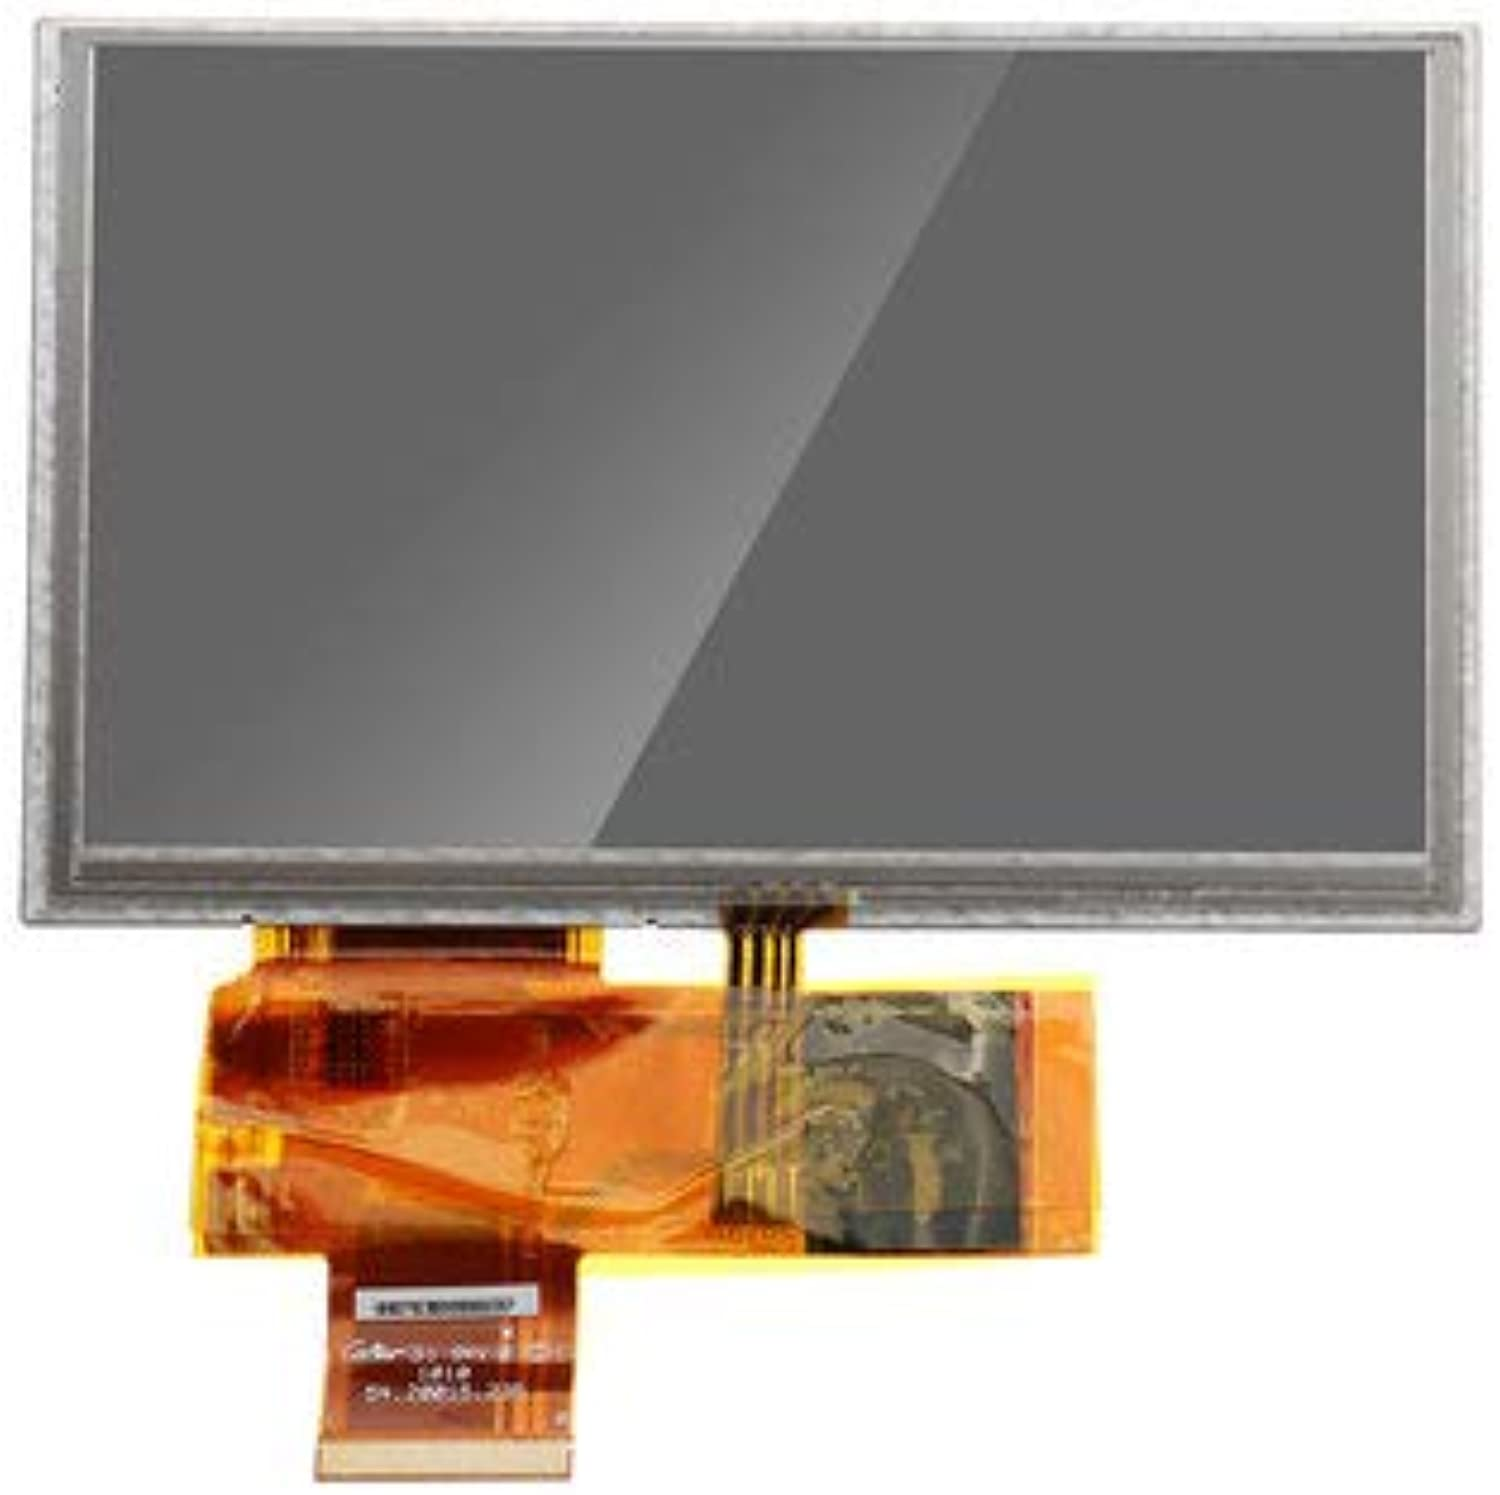 Compatible SCM & DIY Kits Raspberry Pi & orange Pi  Lichee Pi 5 inch Display RTP 800  480 Resolution with 4Wire Resistive Touch Screen  1x 5 inch Touch Screen